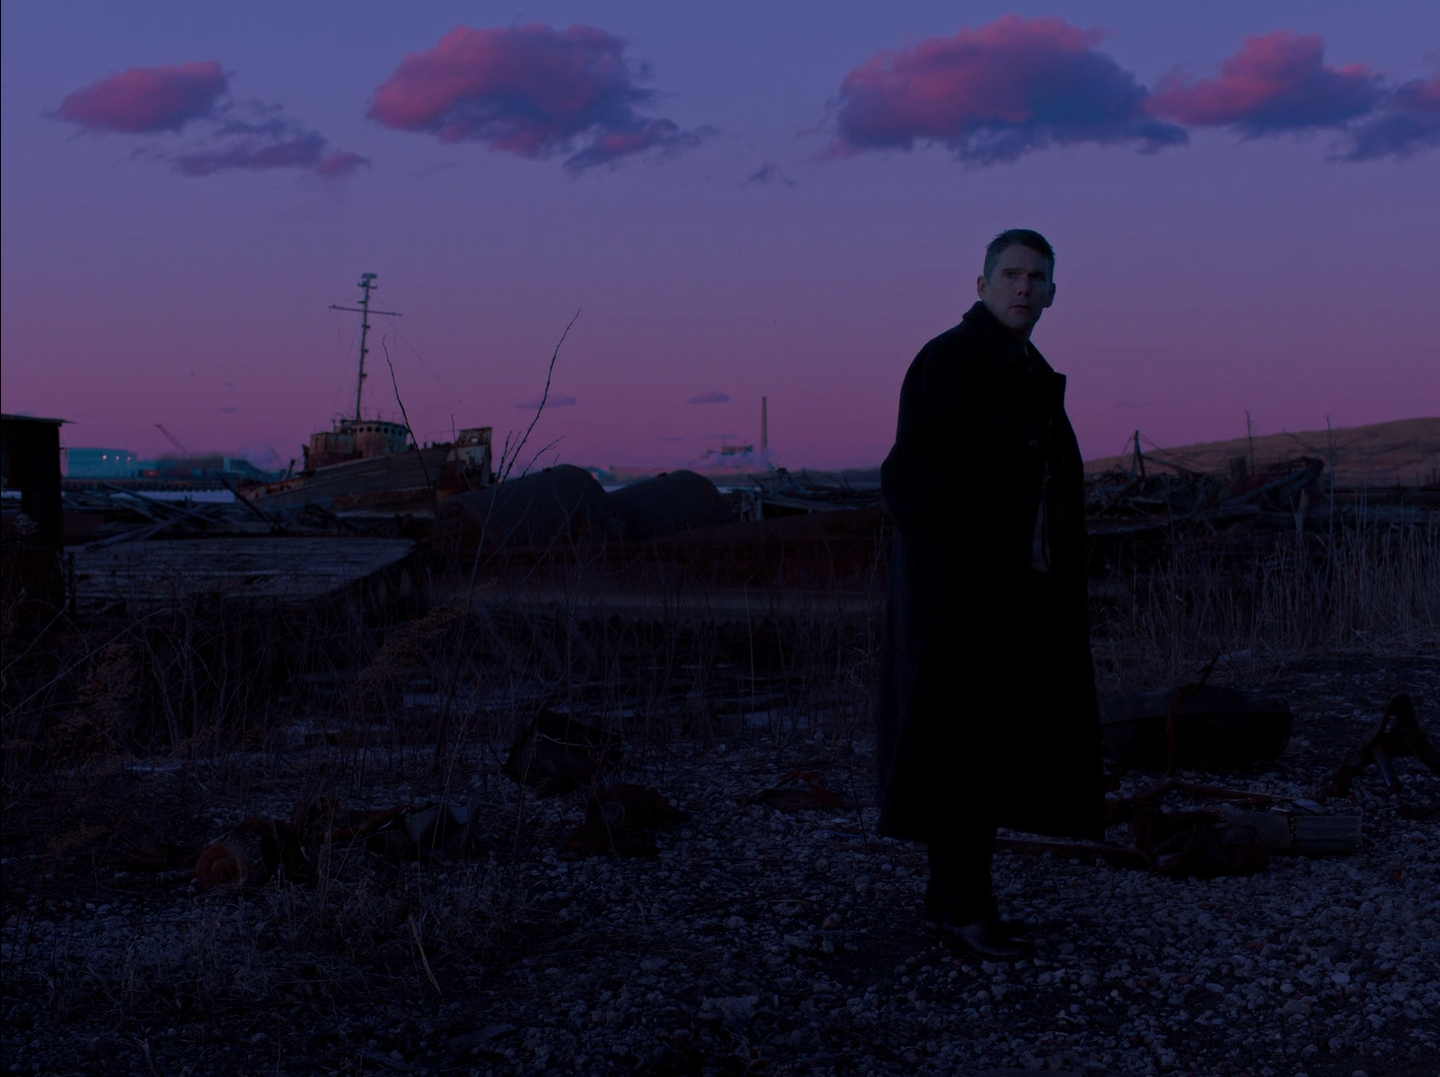 Ethan Hawke as Ernst Toller in Paul Schrader's First Reformed